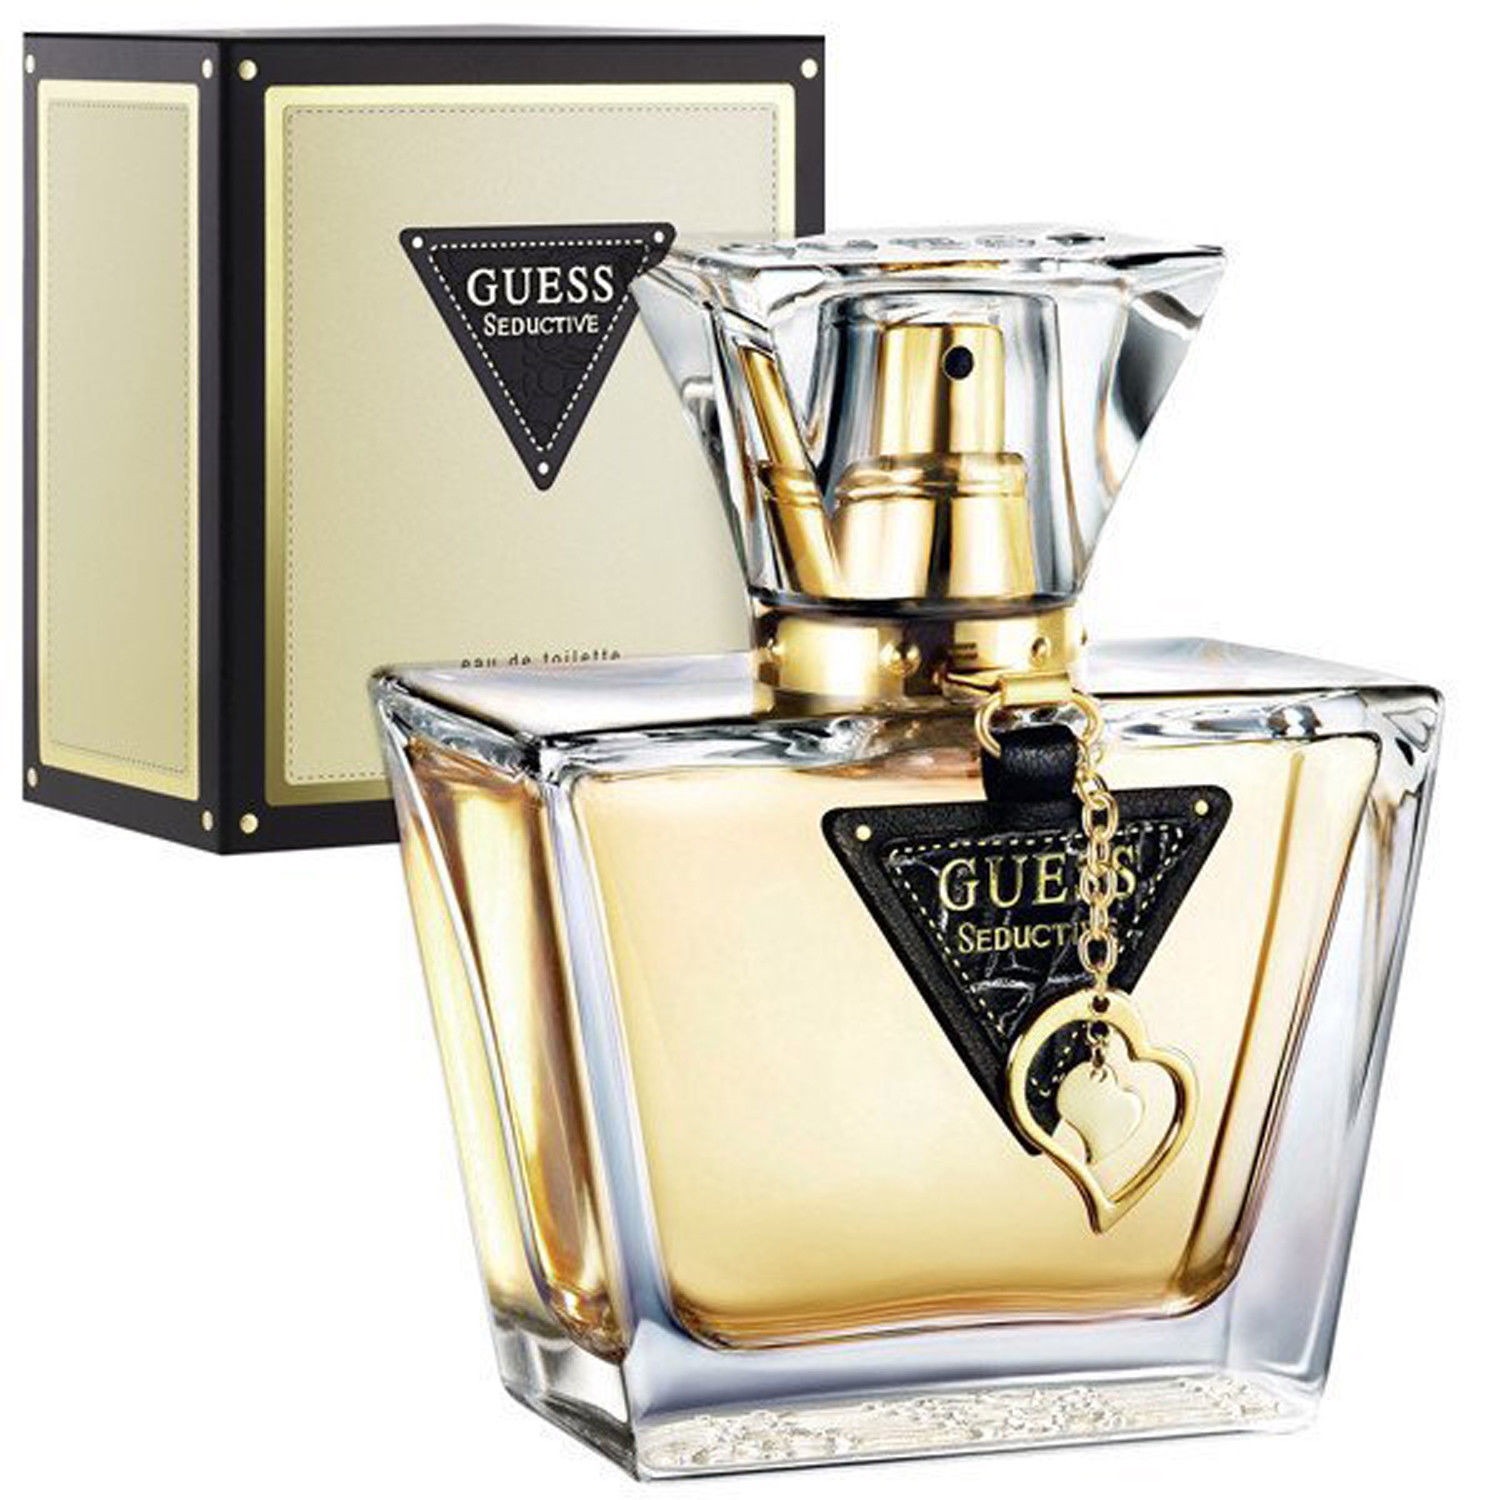 Guess Seductive Edt 75ml For Women